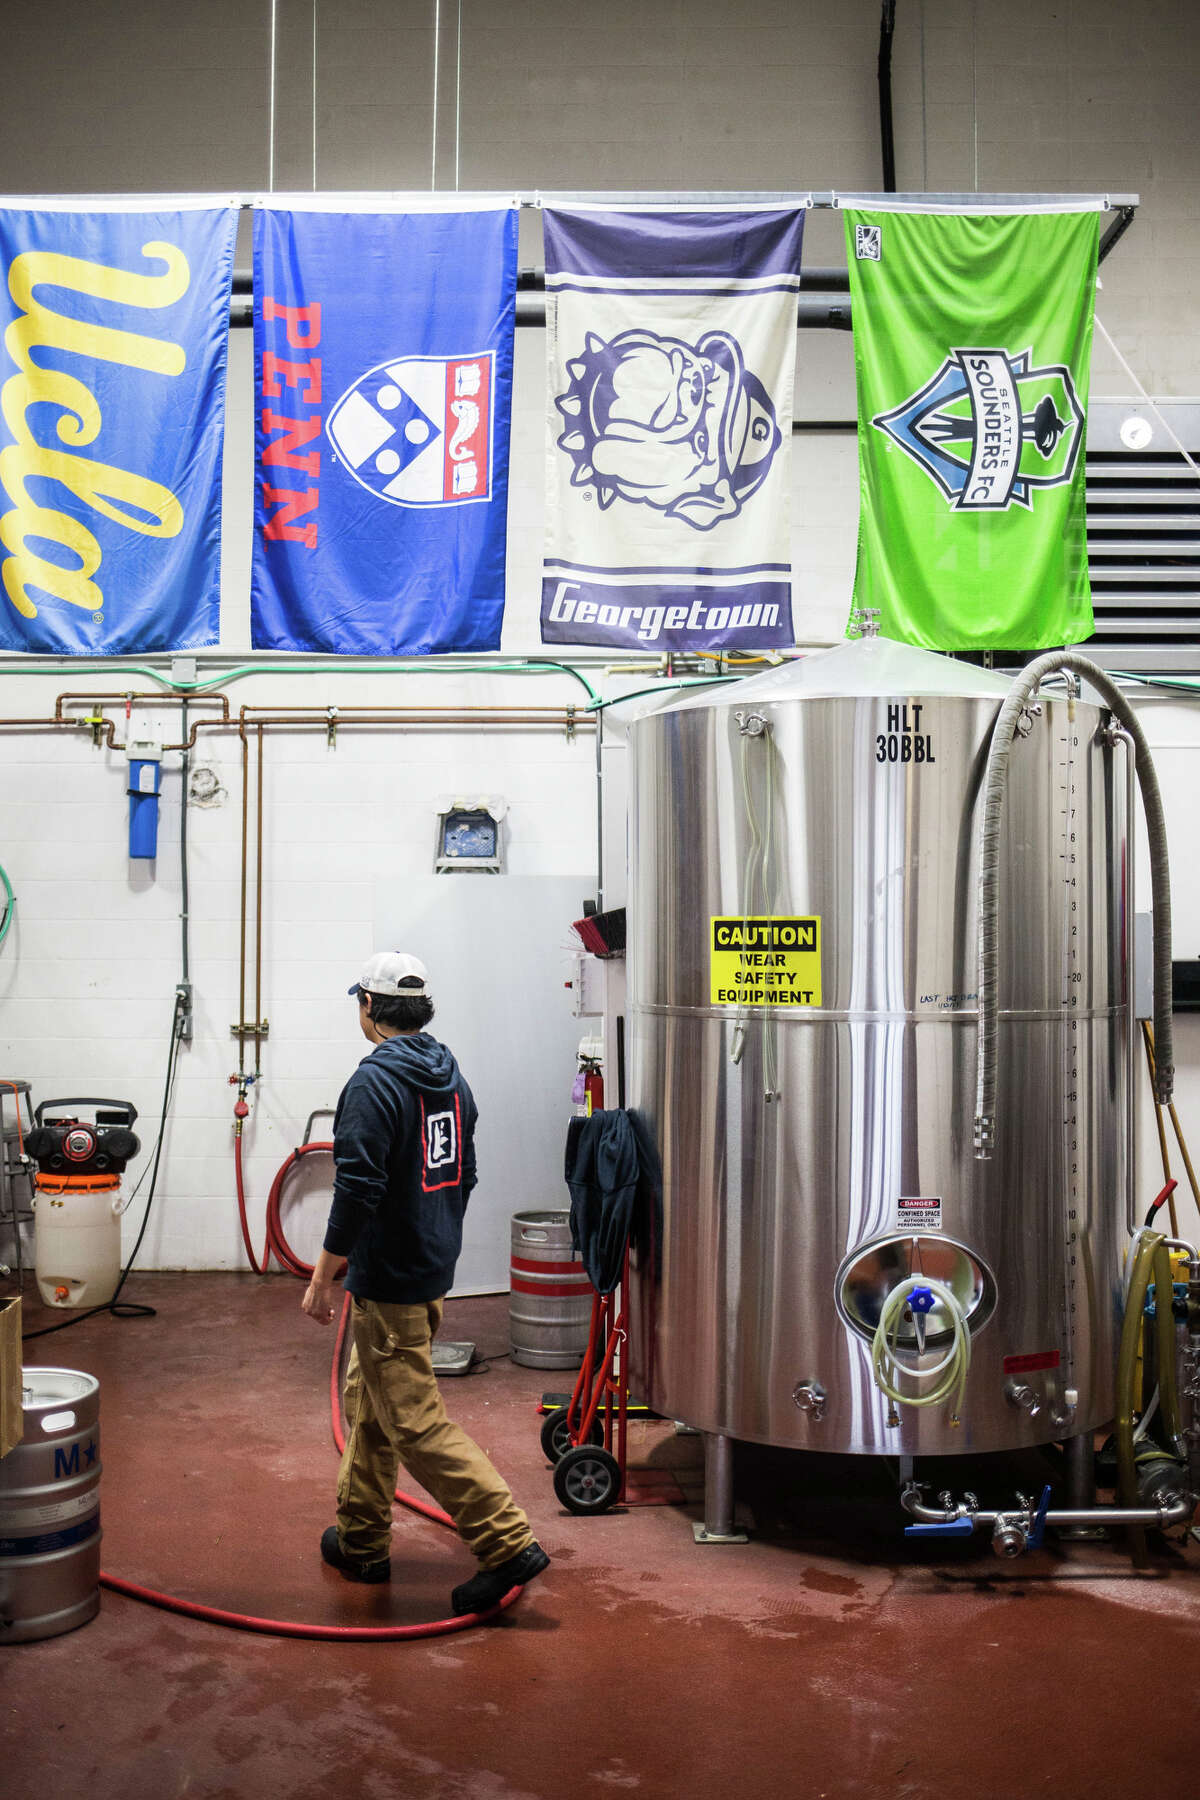 Brewmaster Barry Chan walks through his brew house at Lucky Envelope Brewing in Ballard on Tuesday, March 28, 2017. (GRANT HINDSLEY, seattlepi.com)